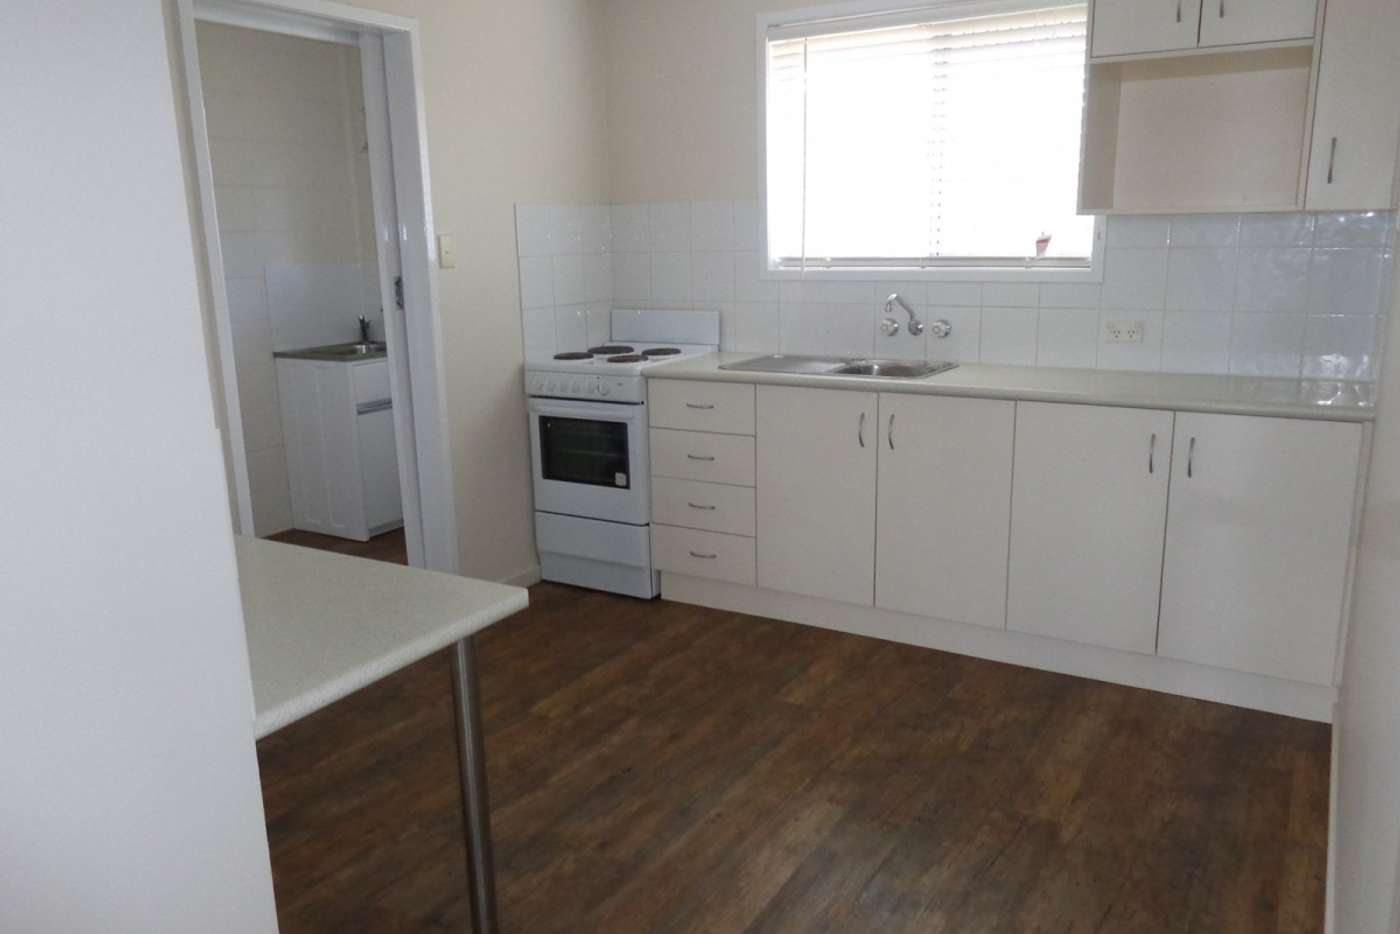 Main view of Homely semiDetached listing, 1/503 Stenner Street, Harristown QLD 4350